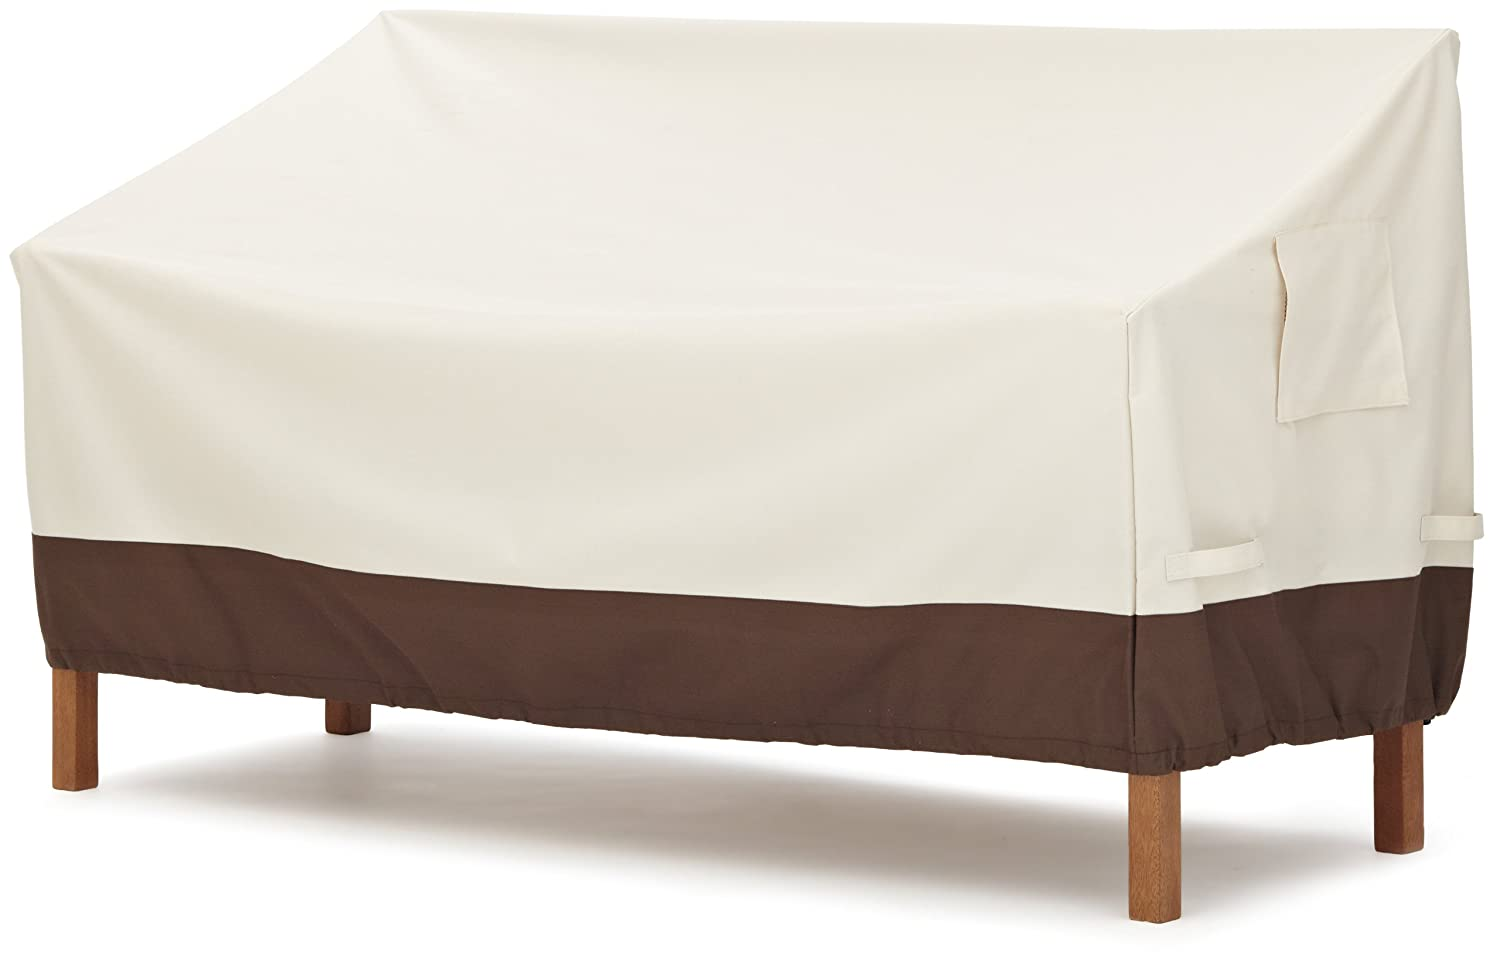 AmazonBasics 3-Seater Bench Patio Cover